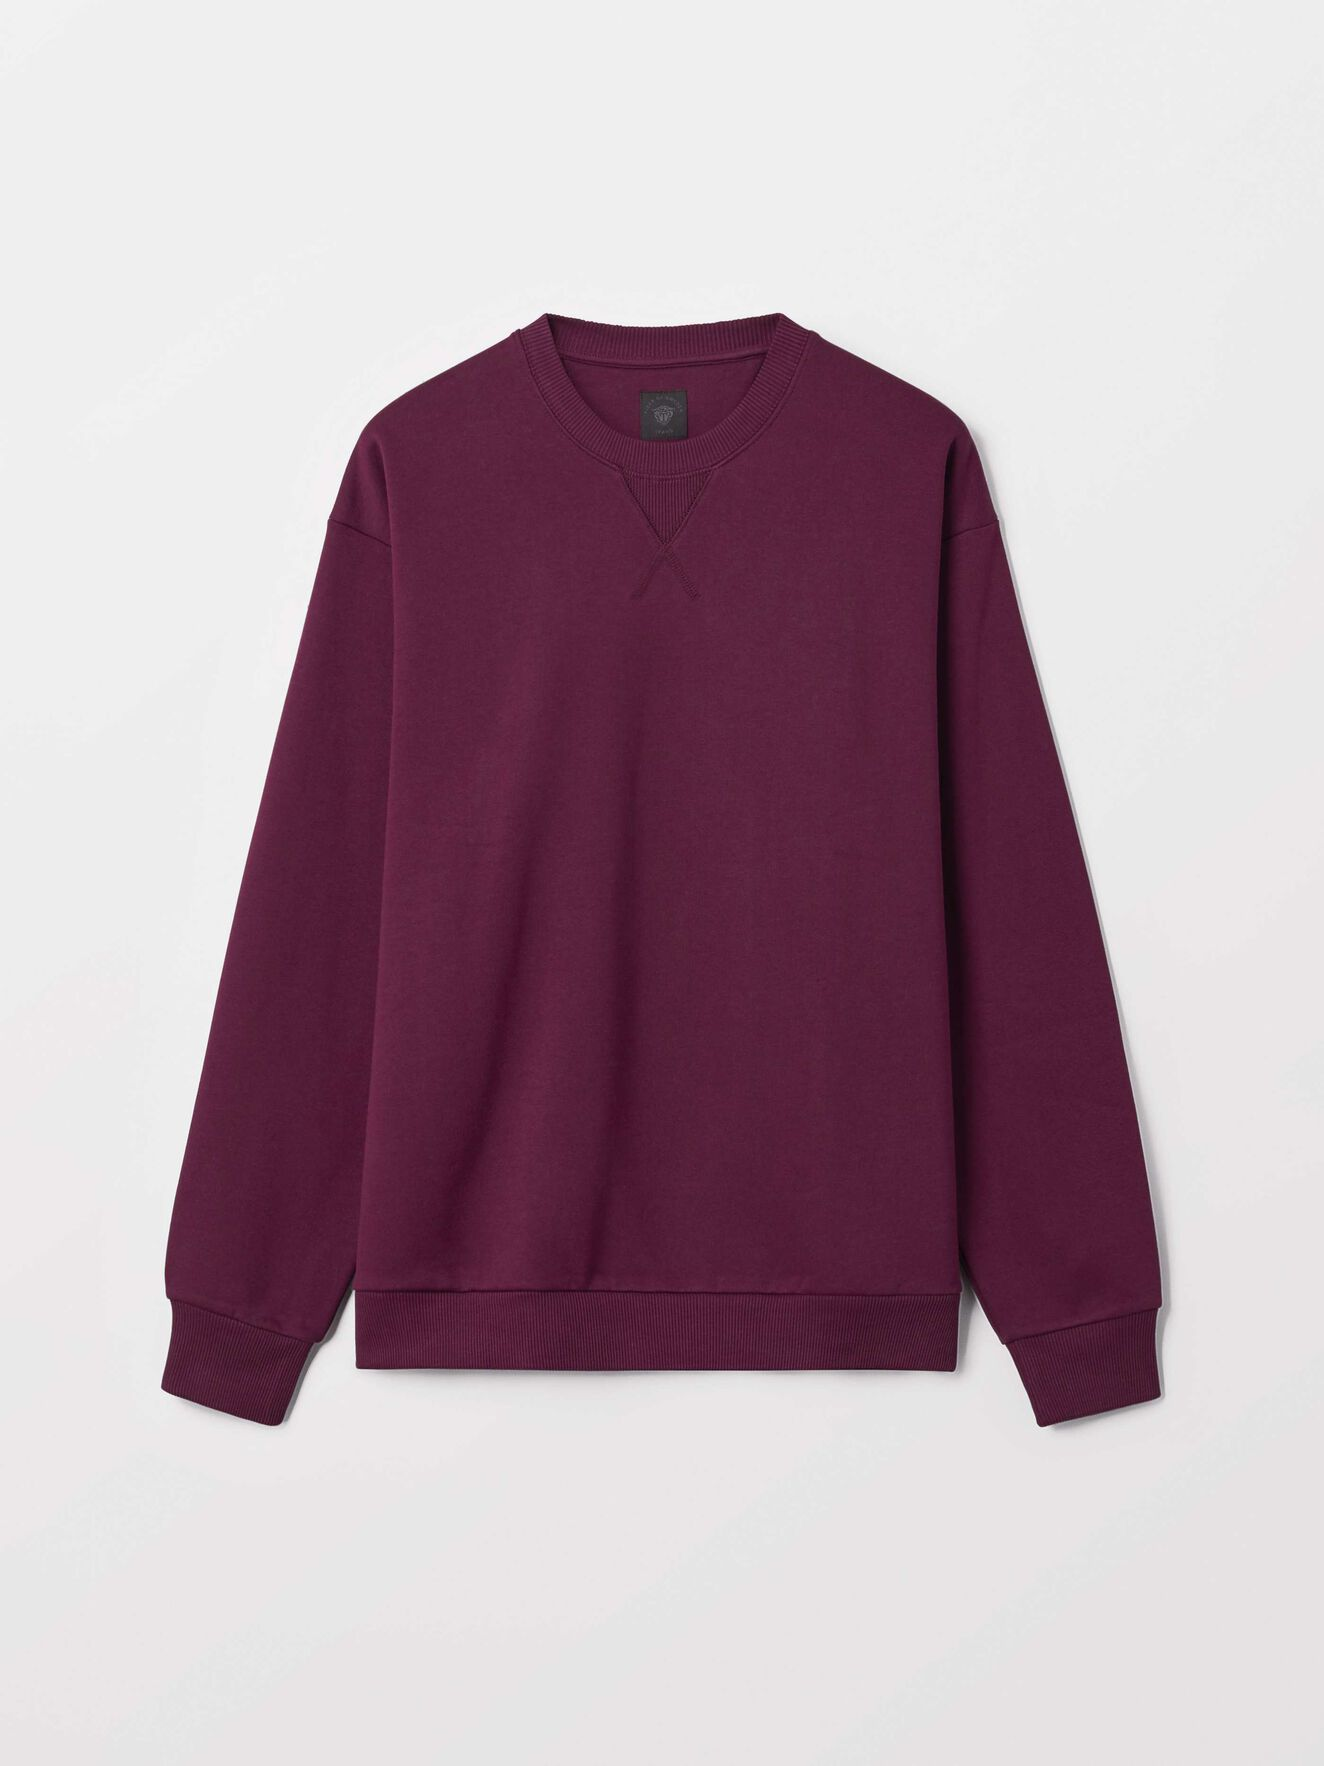 Tom So Sweatshirt in Deep Ruby from Tiger of Sweden